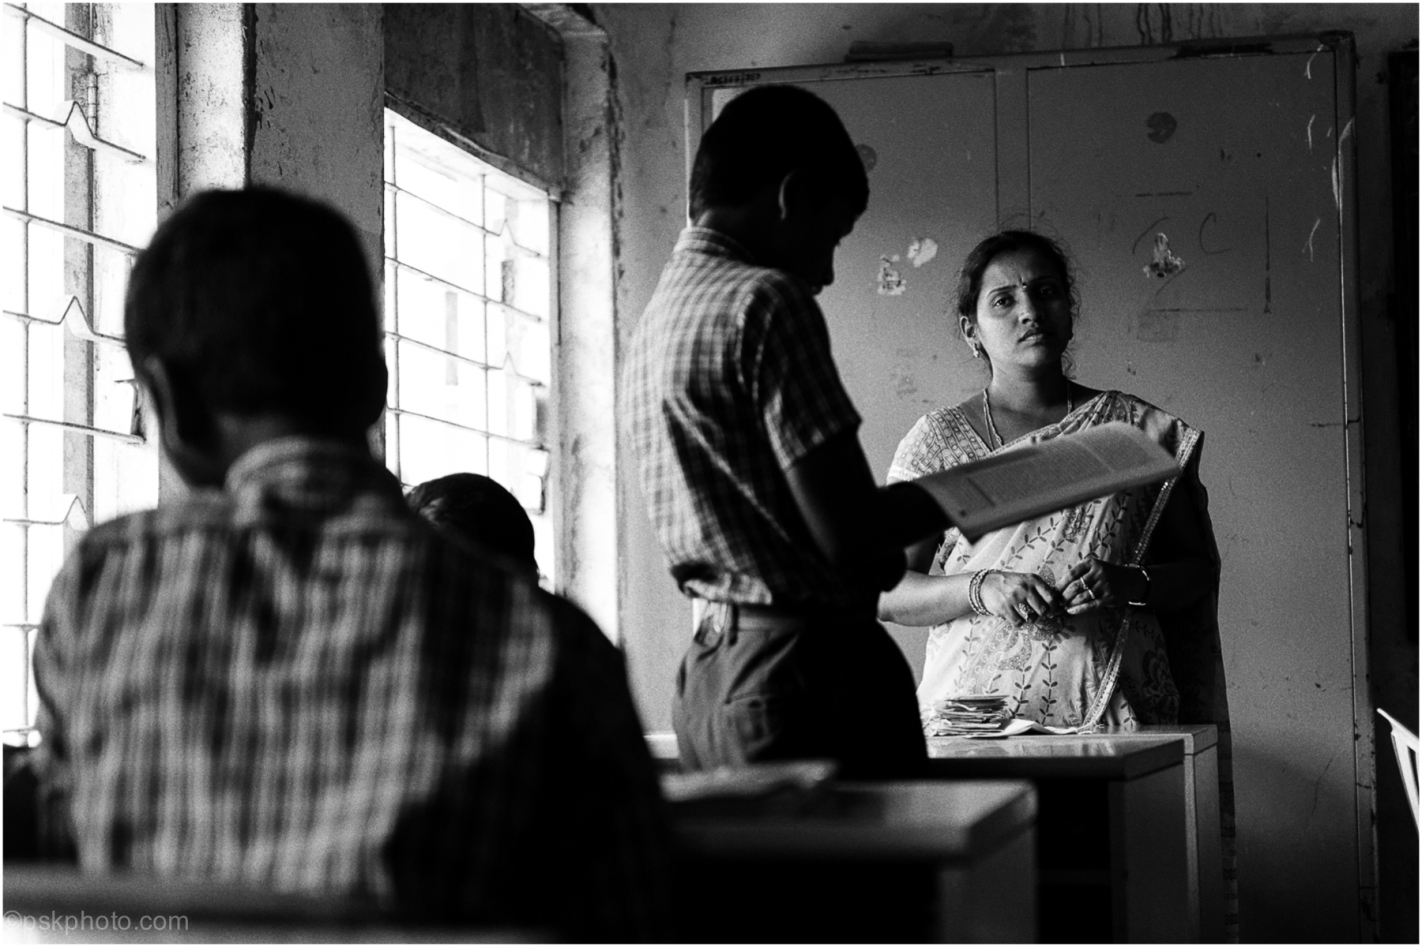 After a long tiring schedule of lessons, Miss is about ready for the bus home. IDPL School, Telangana, India, 2014